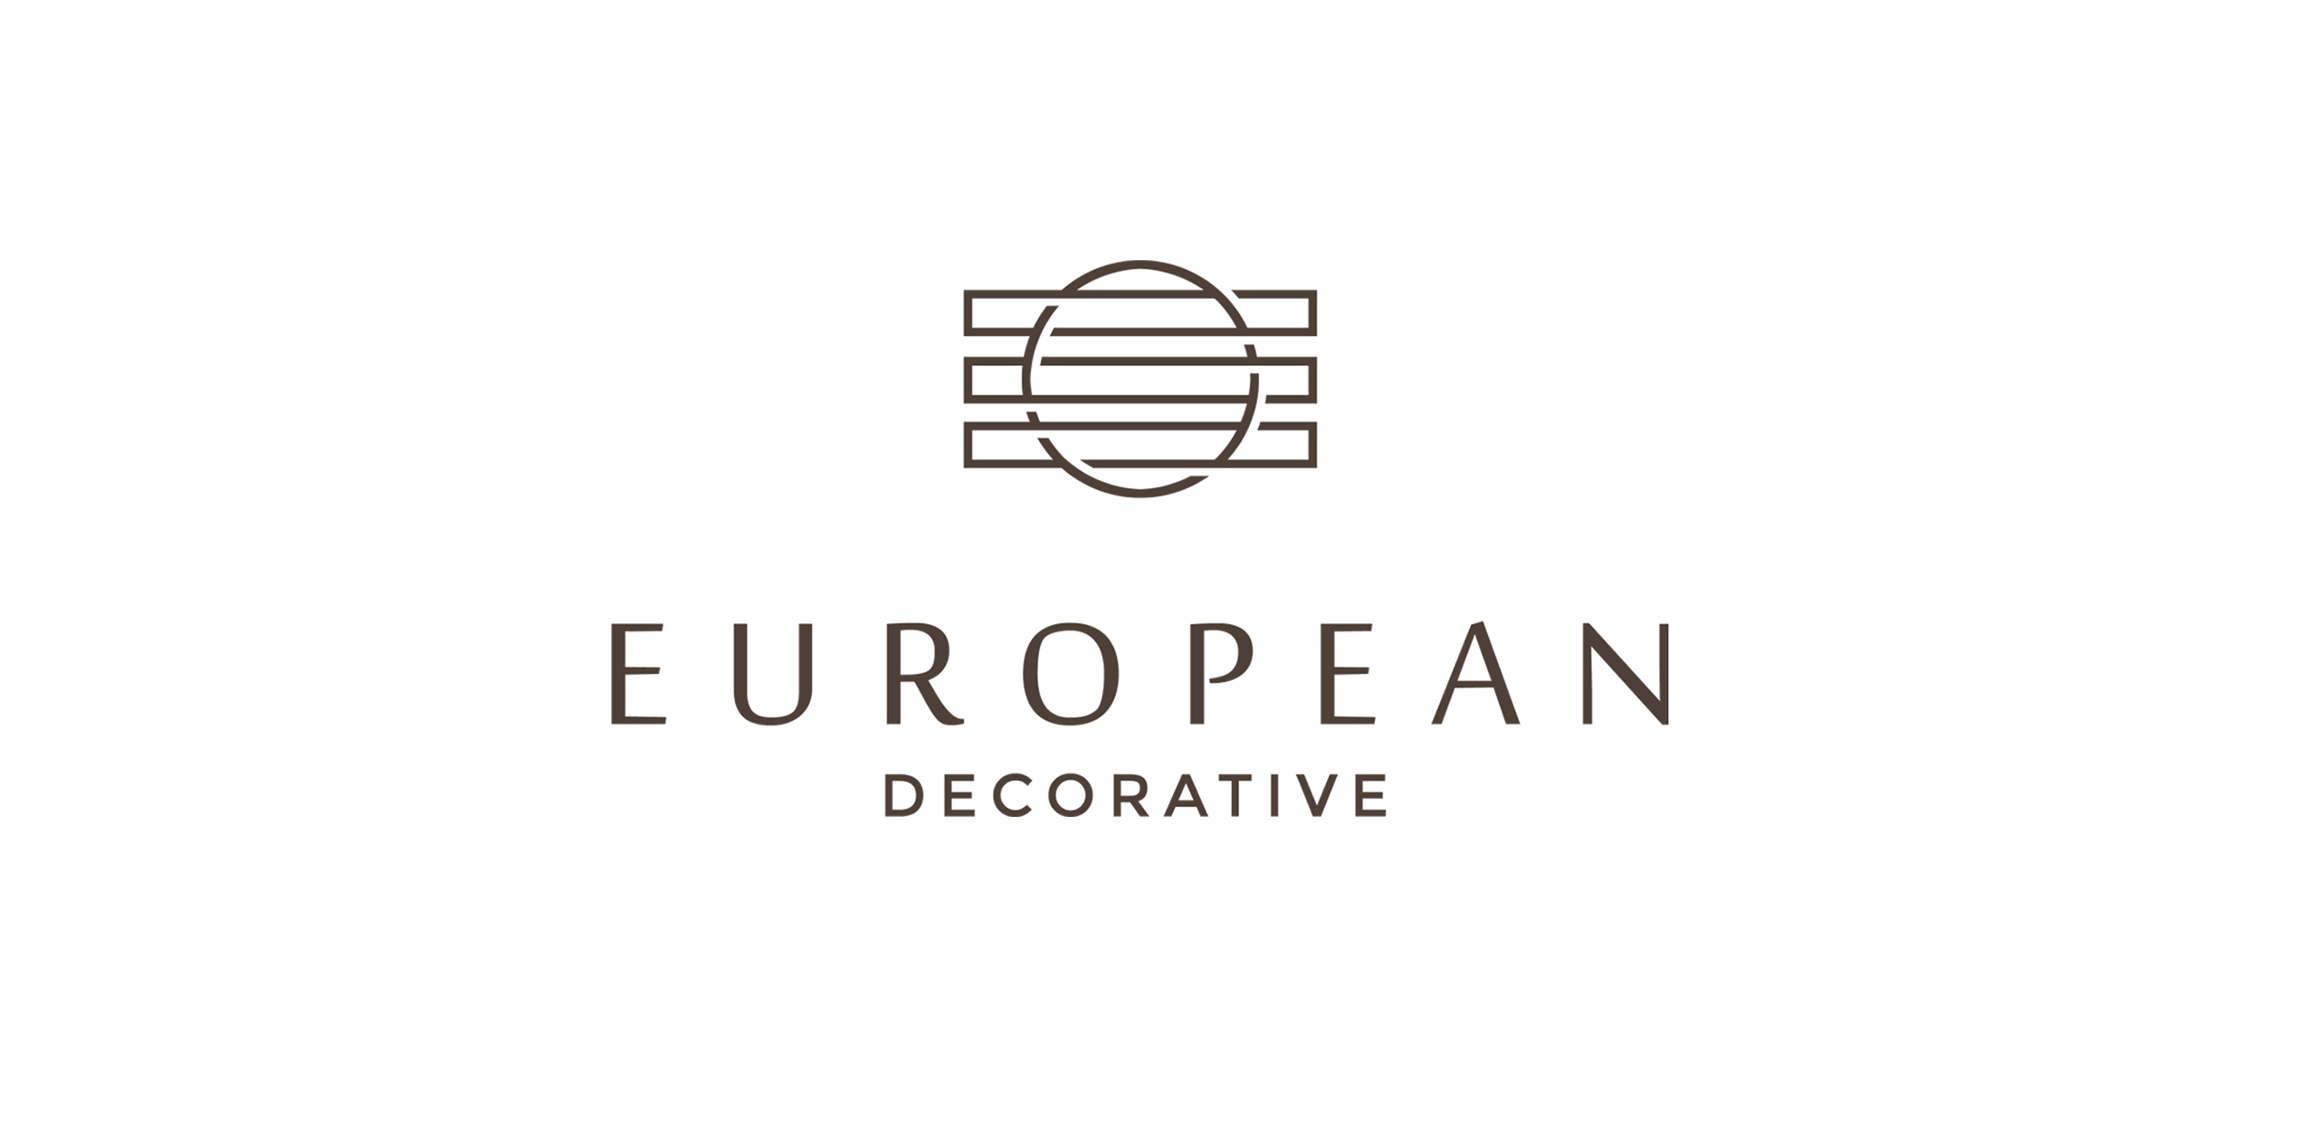 European Decorative